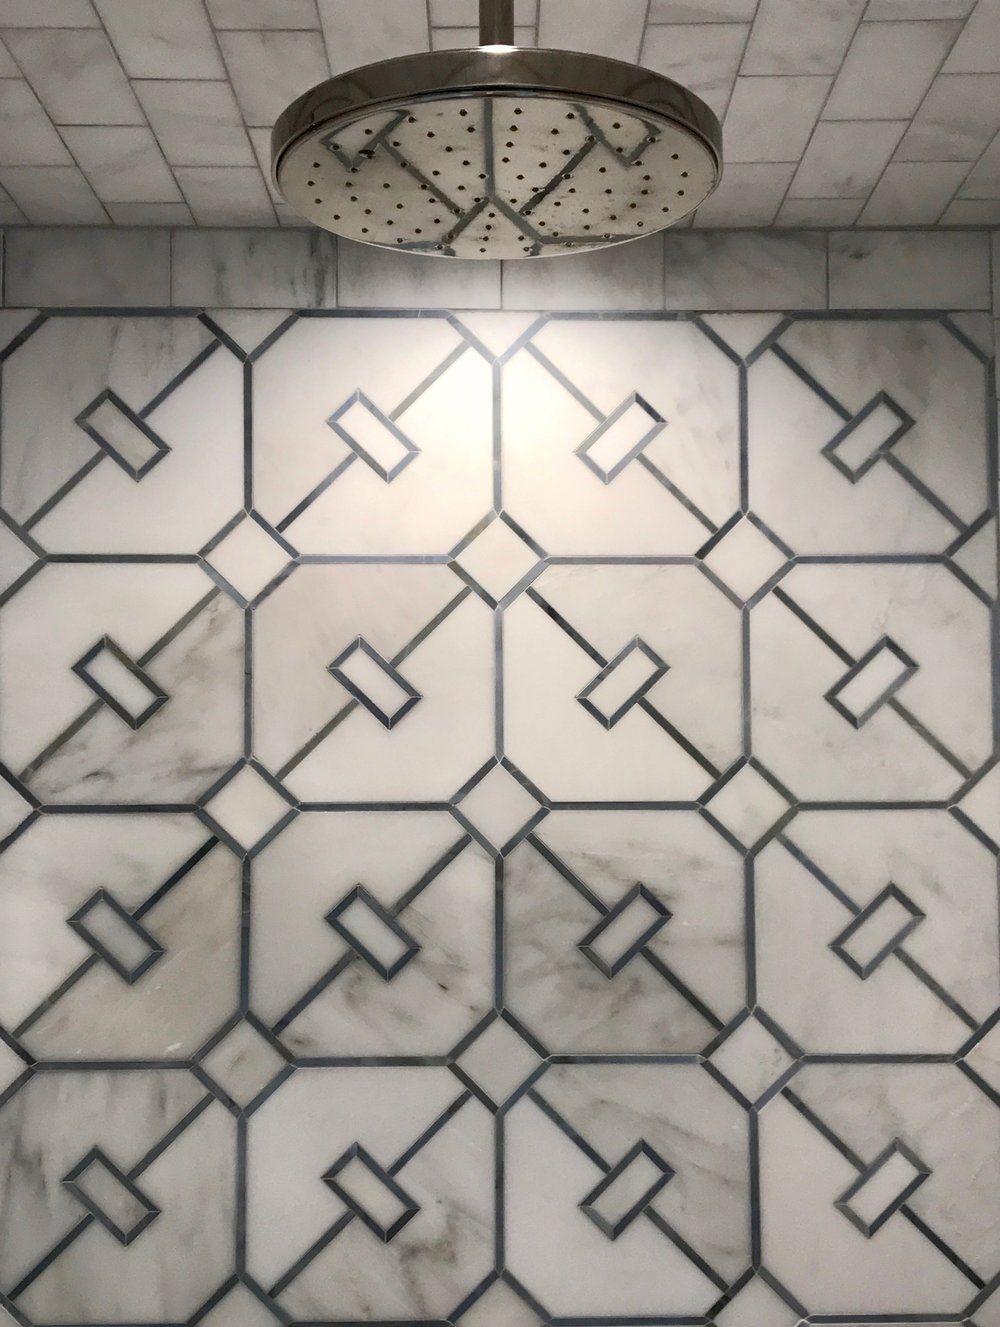 Asian Carrara tile with Cadet Blue geometric pattern. Nickel Silver Raindome by Laura Kirar for Kallista.